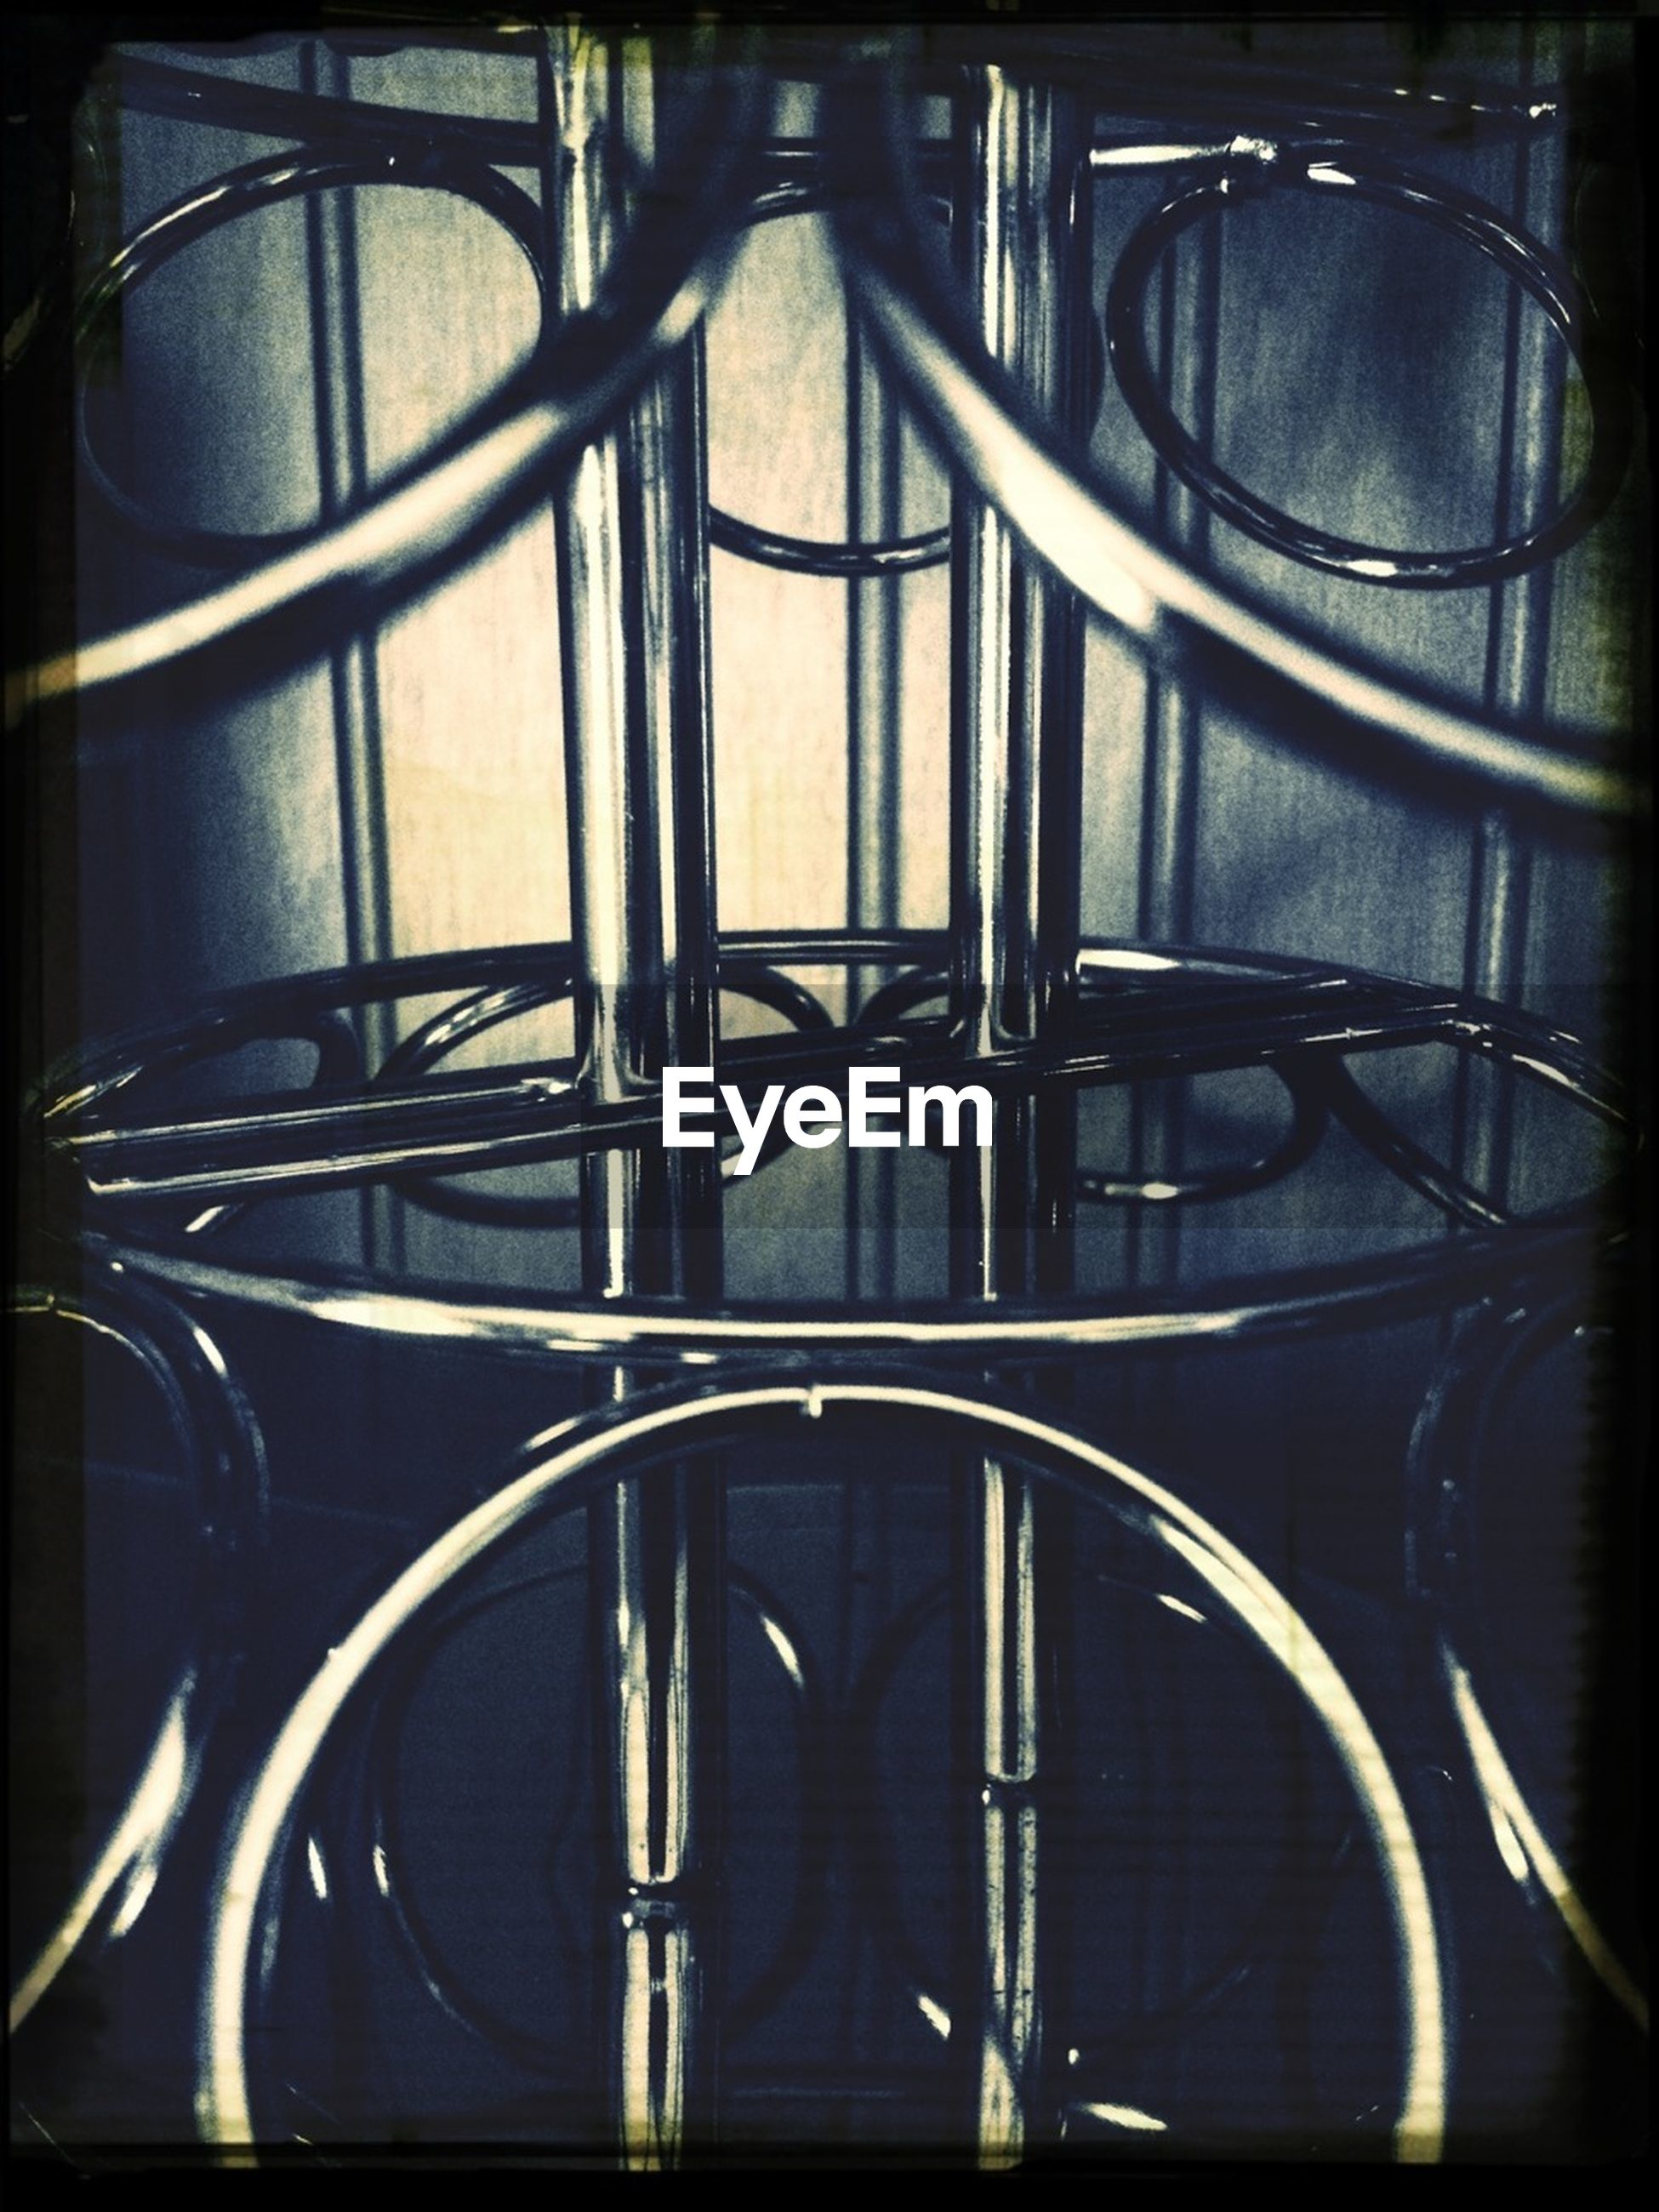 indoors, metal, built structure, architecture, railing, pattern, circle, close-up, metal grate, design, full frame, metallic, no people, backgrounds, geometric shape, building exterior, transfer print, building, auto post production filter, window